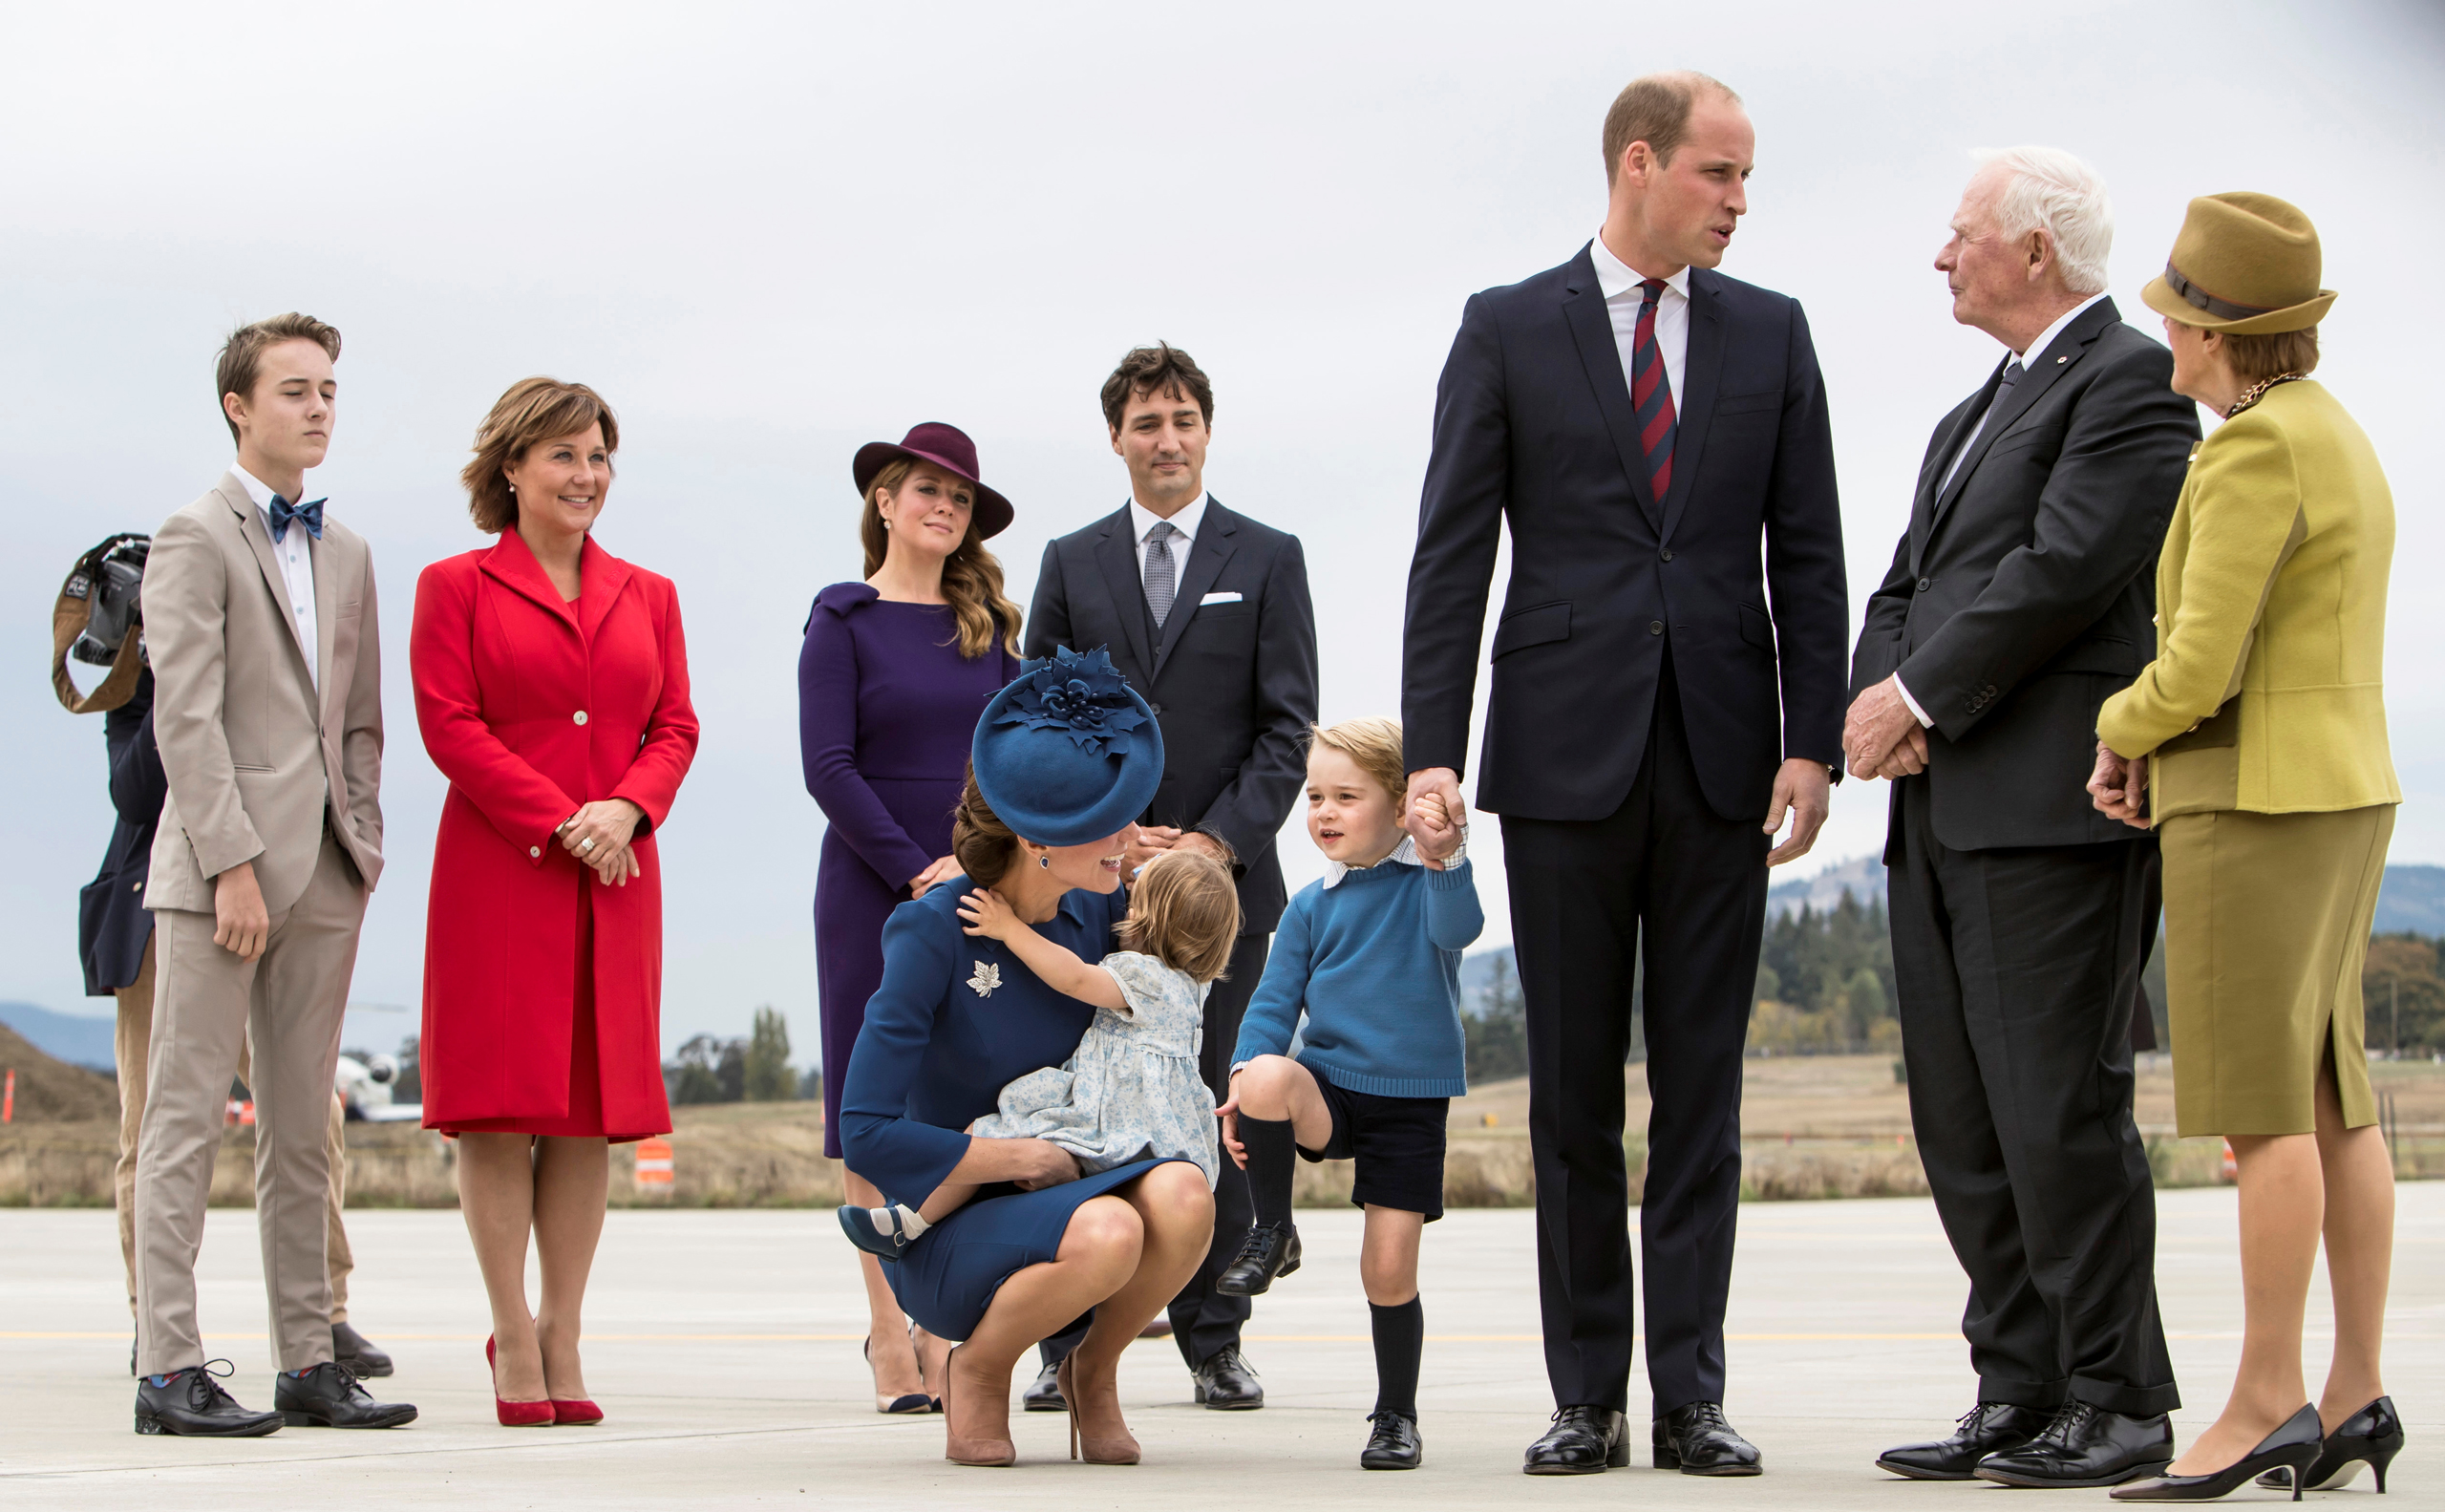 Britain's Prince William, Catherine, Duchess of Cambridge, Prince George and Princess Charlotte arrive at the Victoria International Airport for the start of their eight day royal tour to Canada in Victoria, British Columbia on September 24, 2016. Also pictured, in the rear, are Canada's Prime Minister Justin Trudeau and his wife Sophie Gregoire Trudeau.